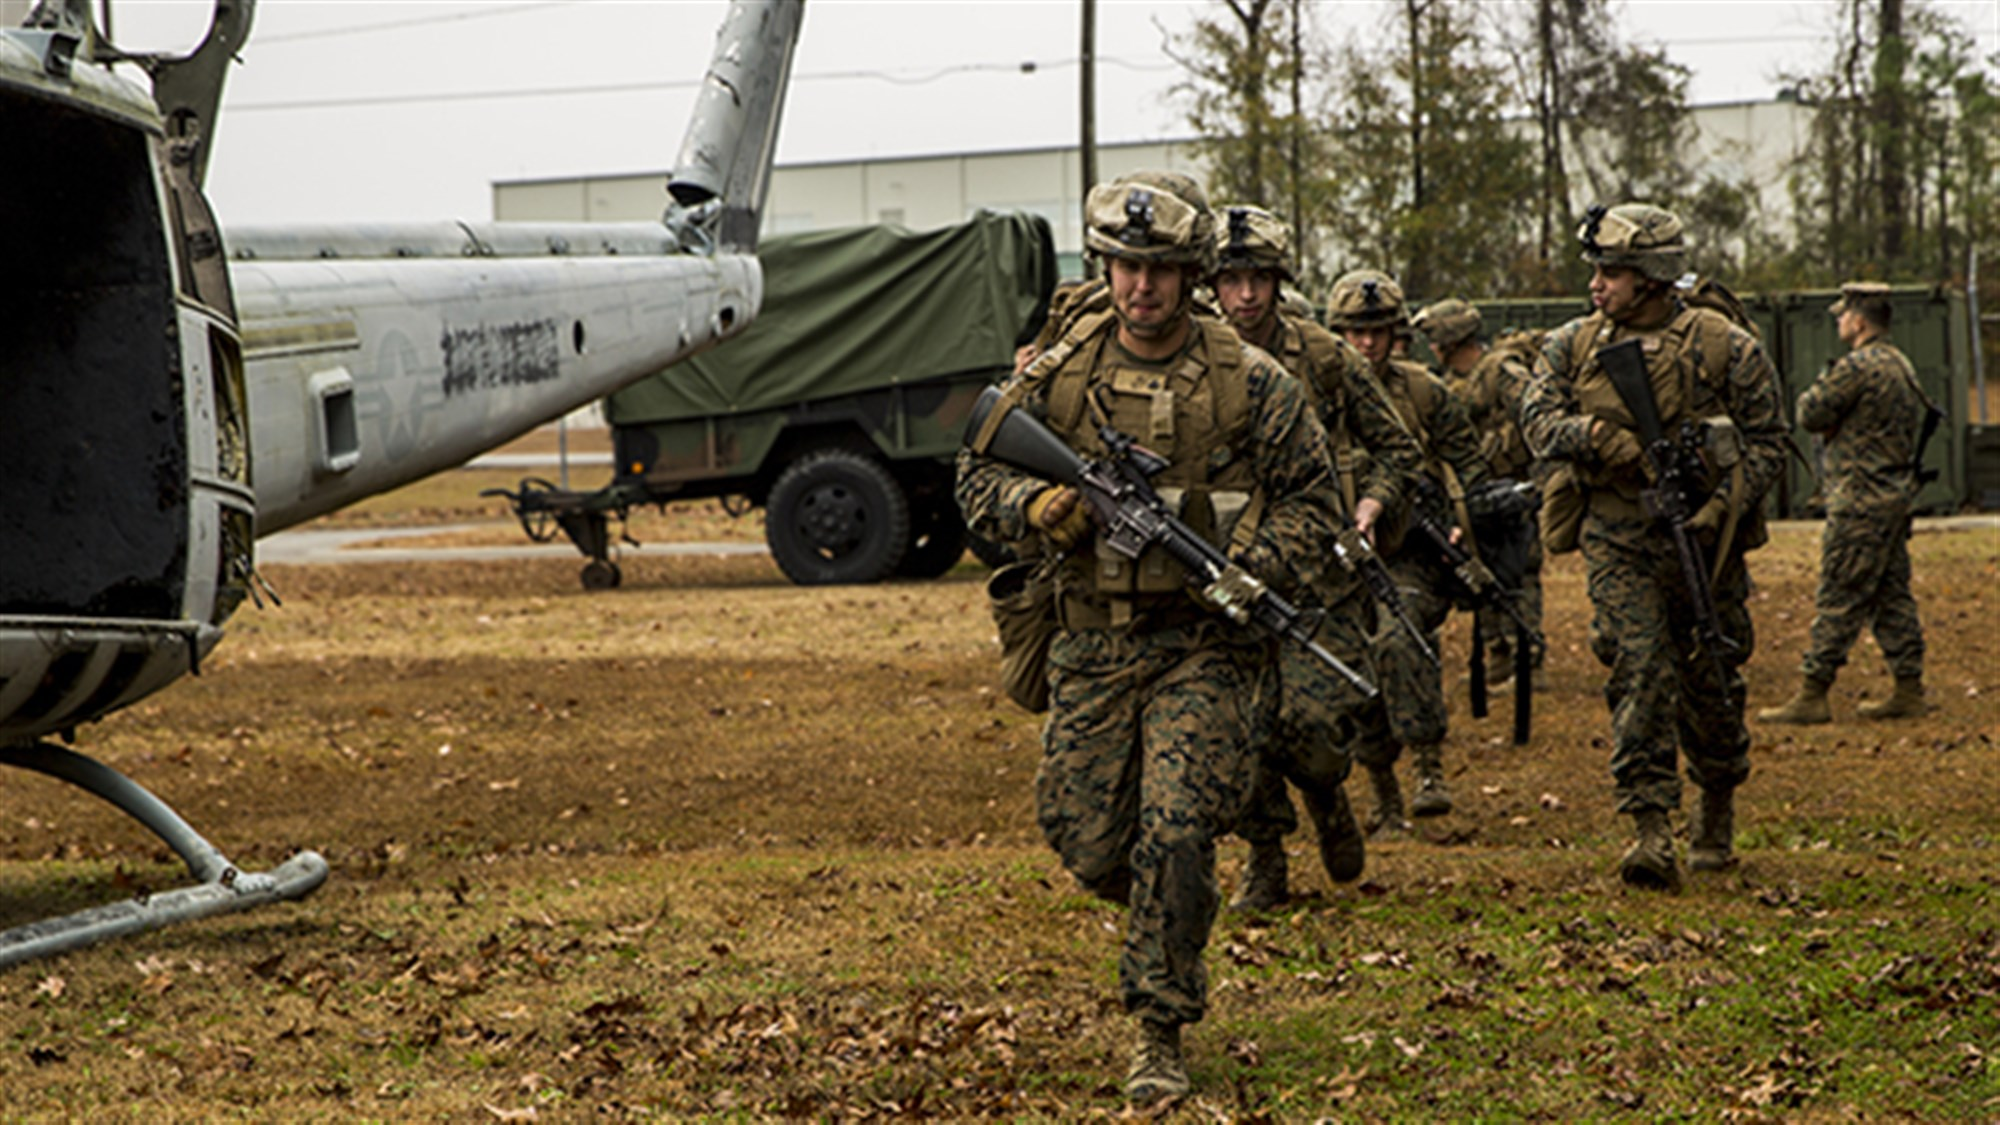 MARINE CORPS BASE CAMP LEJEUNE, North Carolina - Marines with 2nd Battalion, 8th Marine Regiment practice entering and exiting the MV-22B Osprey during a simulated Tactical Recovery of Aircraft and Personnel, or TRAP, mission aboard Marine Corps Air Station New River, Dec. 9, 2014. The TRAP training provides designated forces tactical training and initial evaluation in order to conduct search and personnel recovery operations for the upcoming deployment with Special-Purpose Marine Air-Ground Task Force Crisis Response-Africa. (Photo by U.S. Marine Lance Cpl. Krista James)